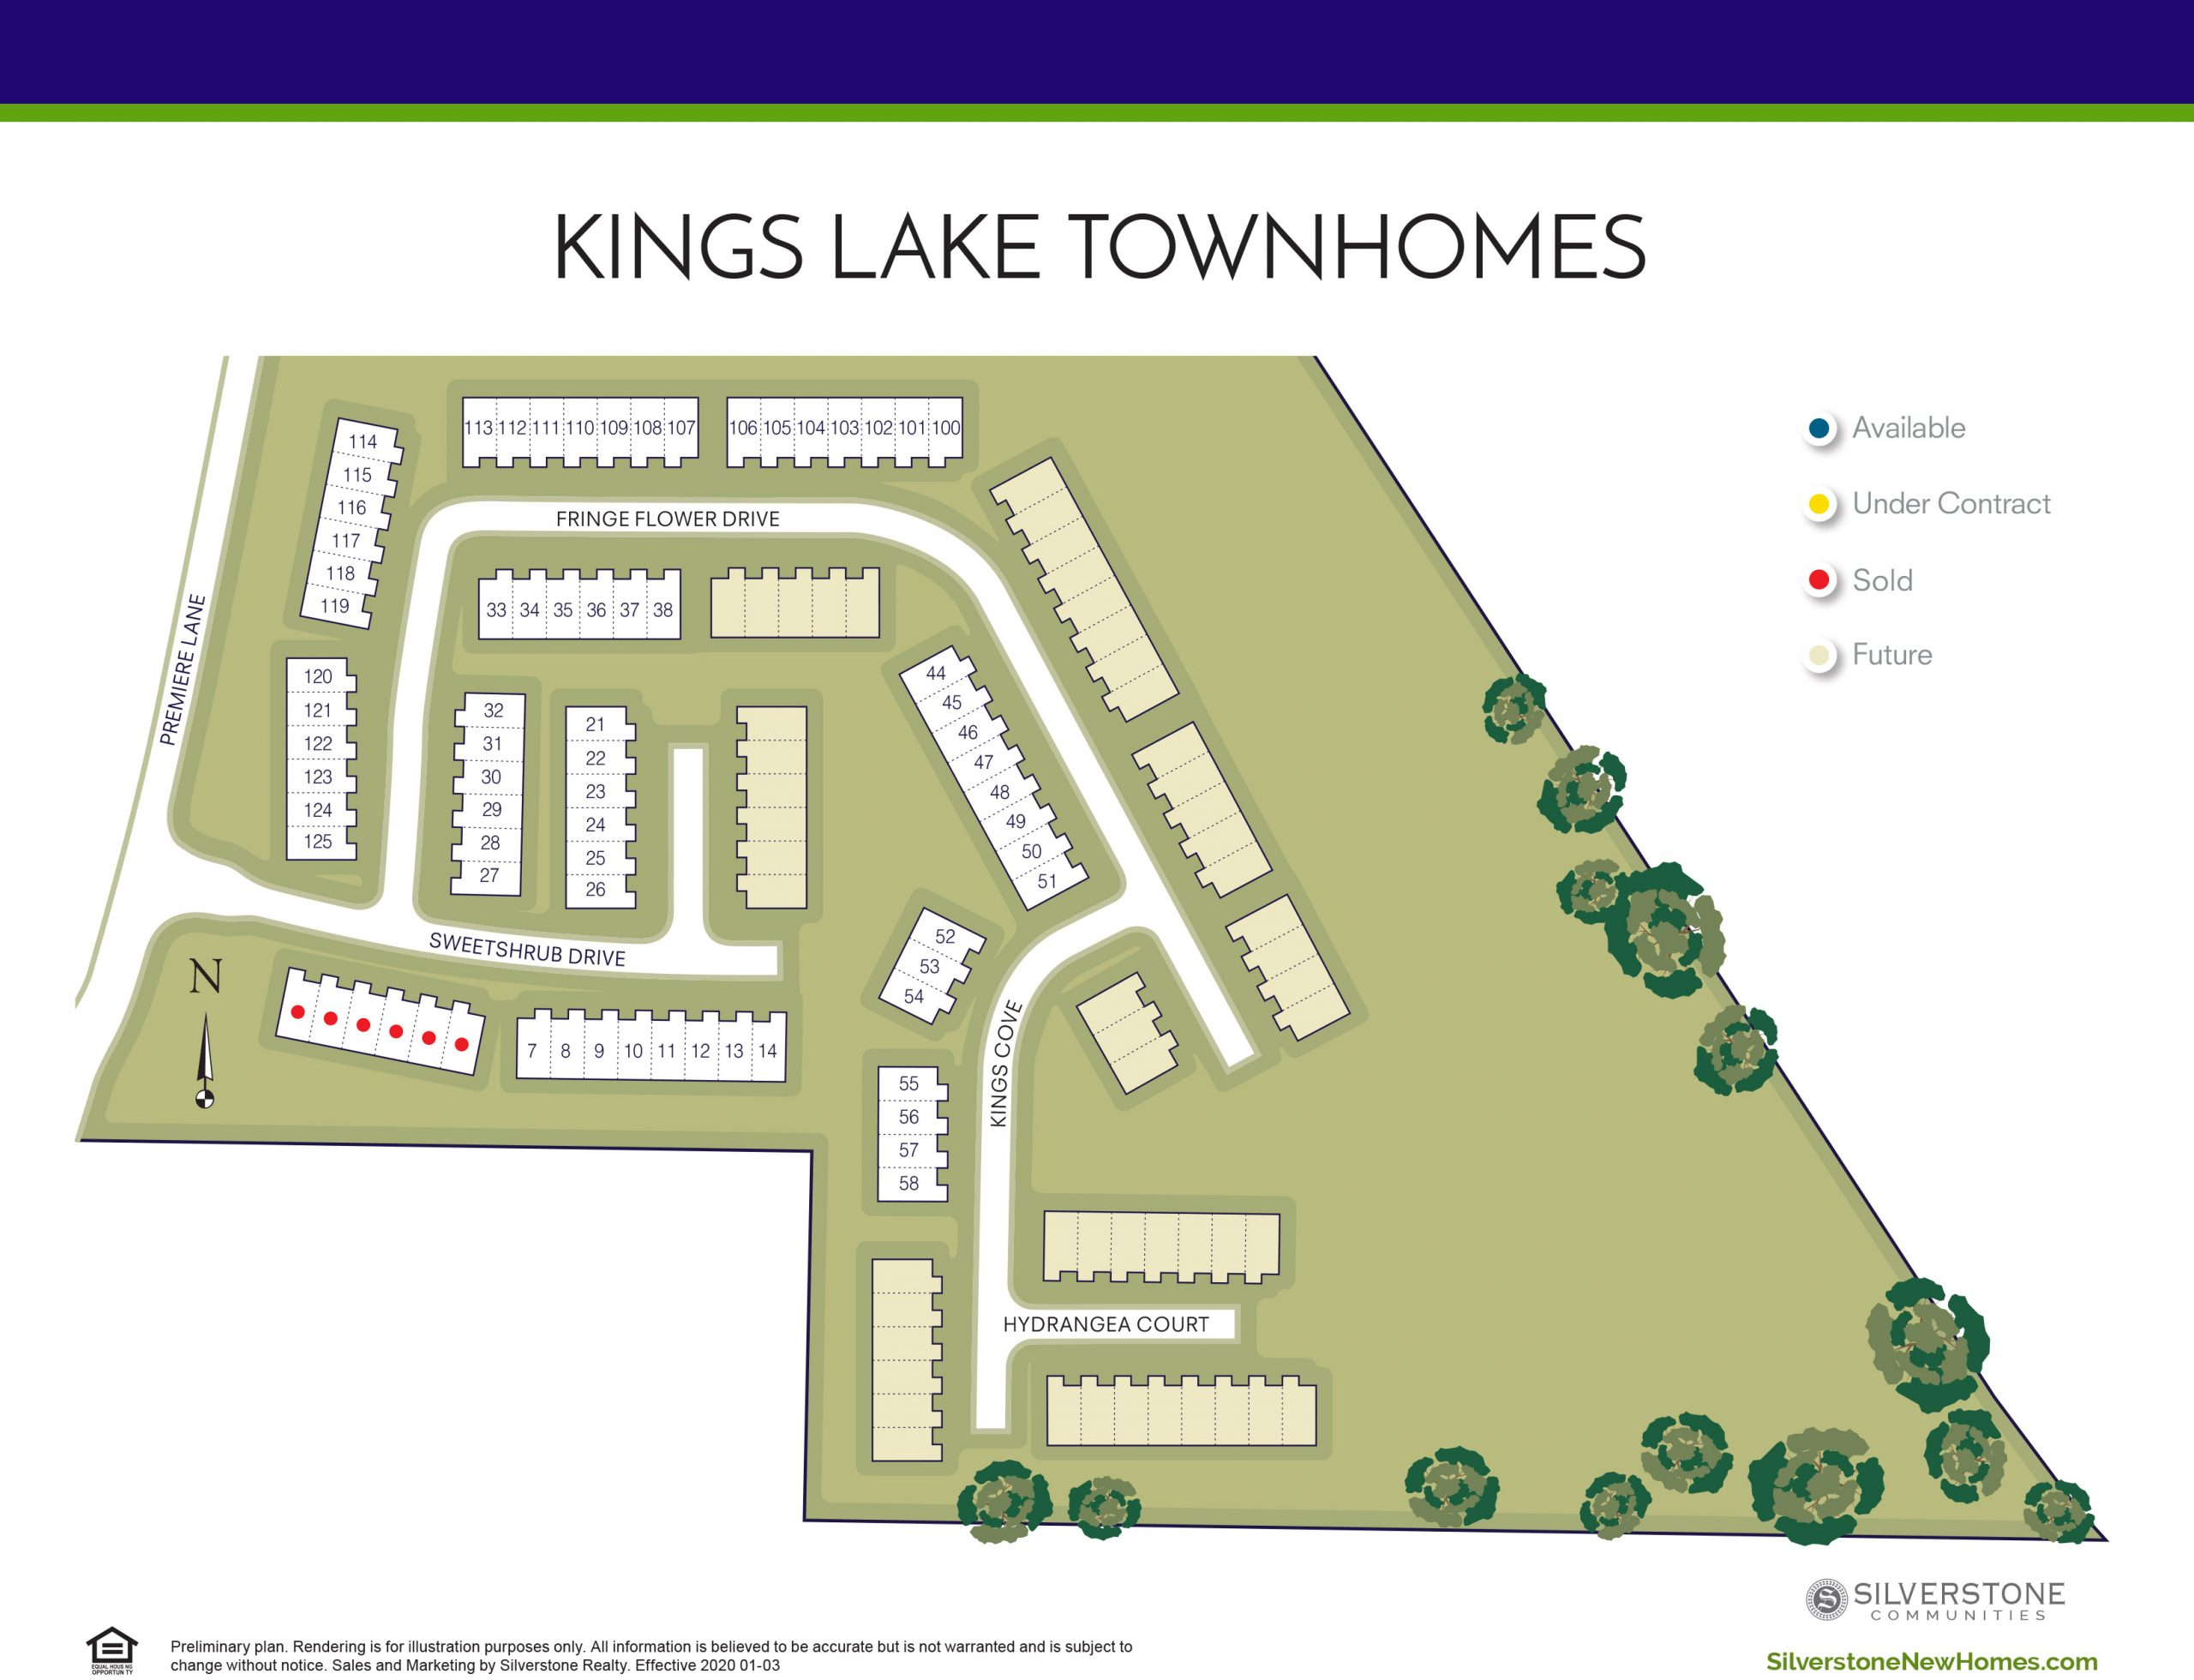 Kings Lake Townhomes